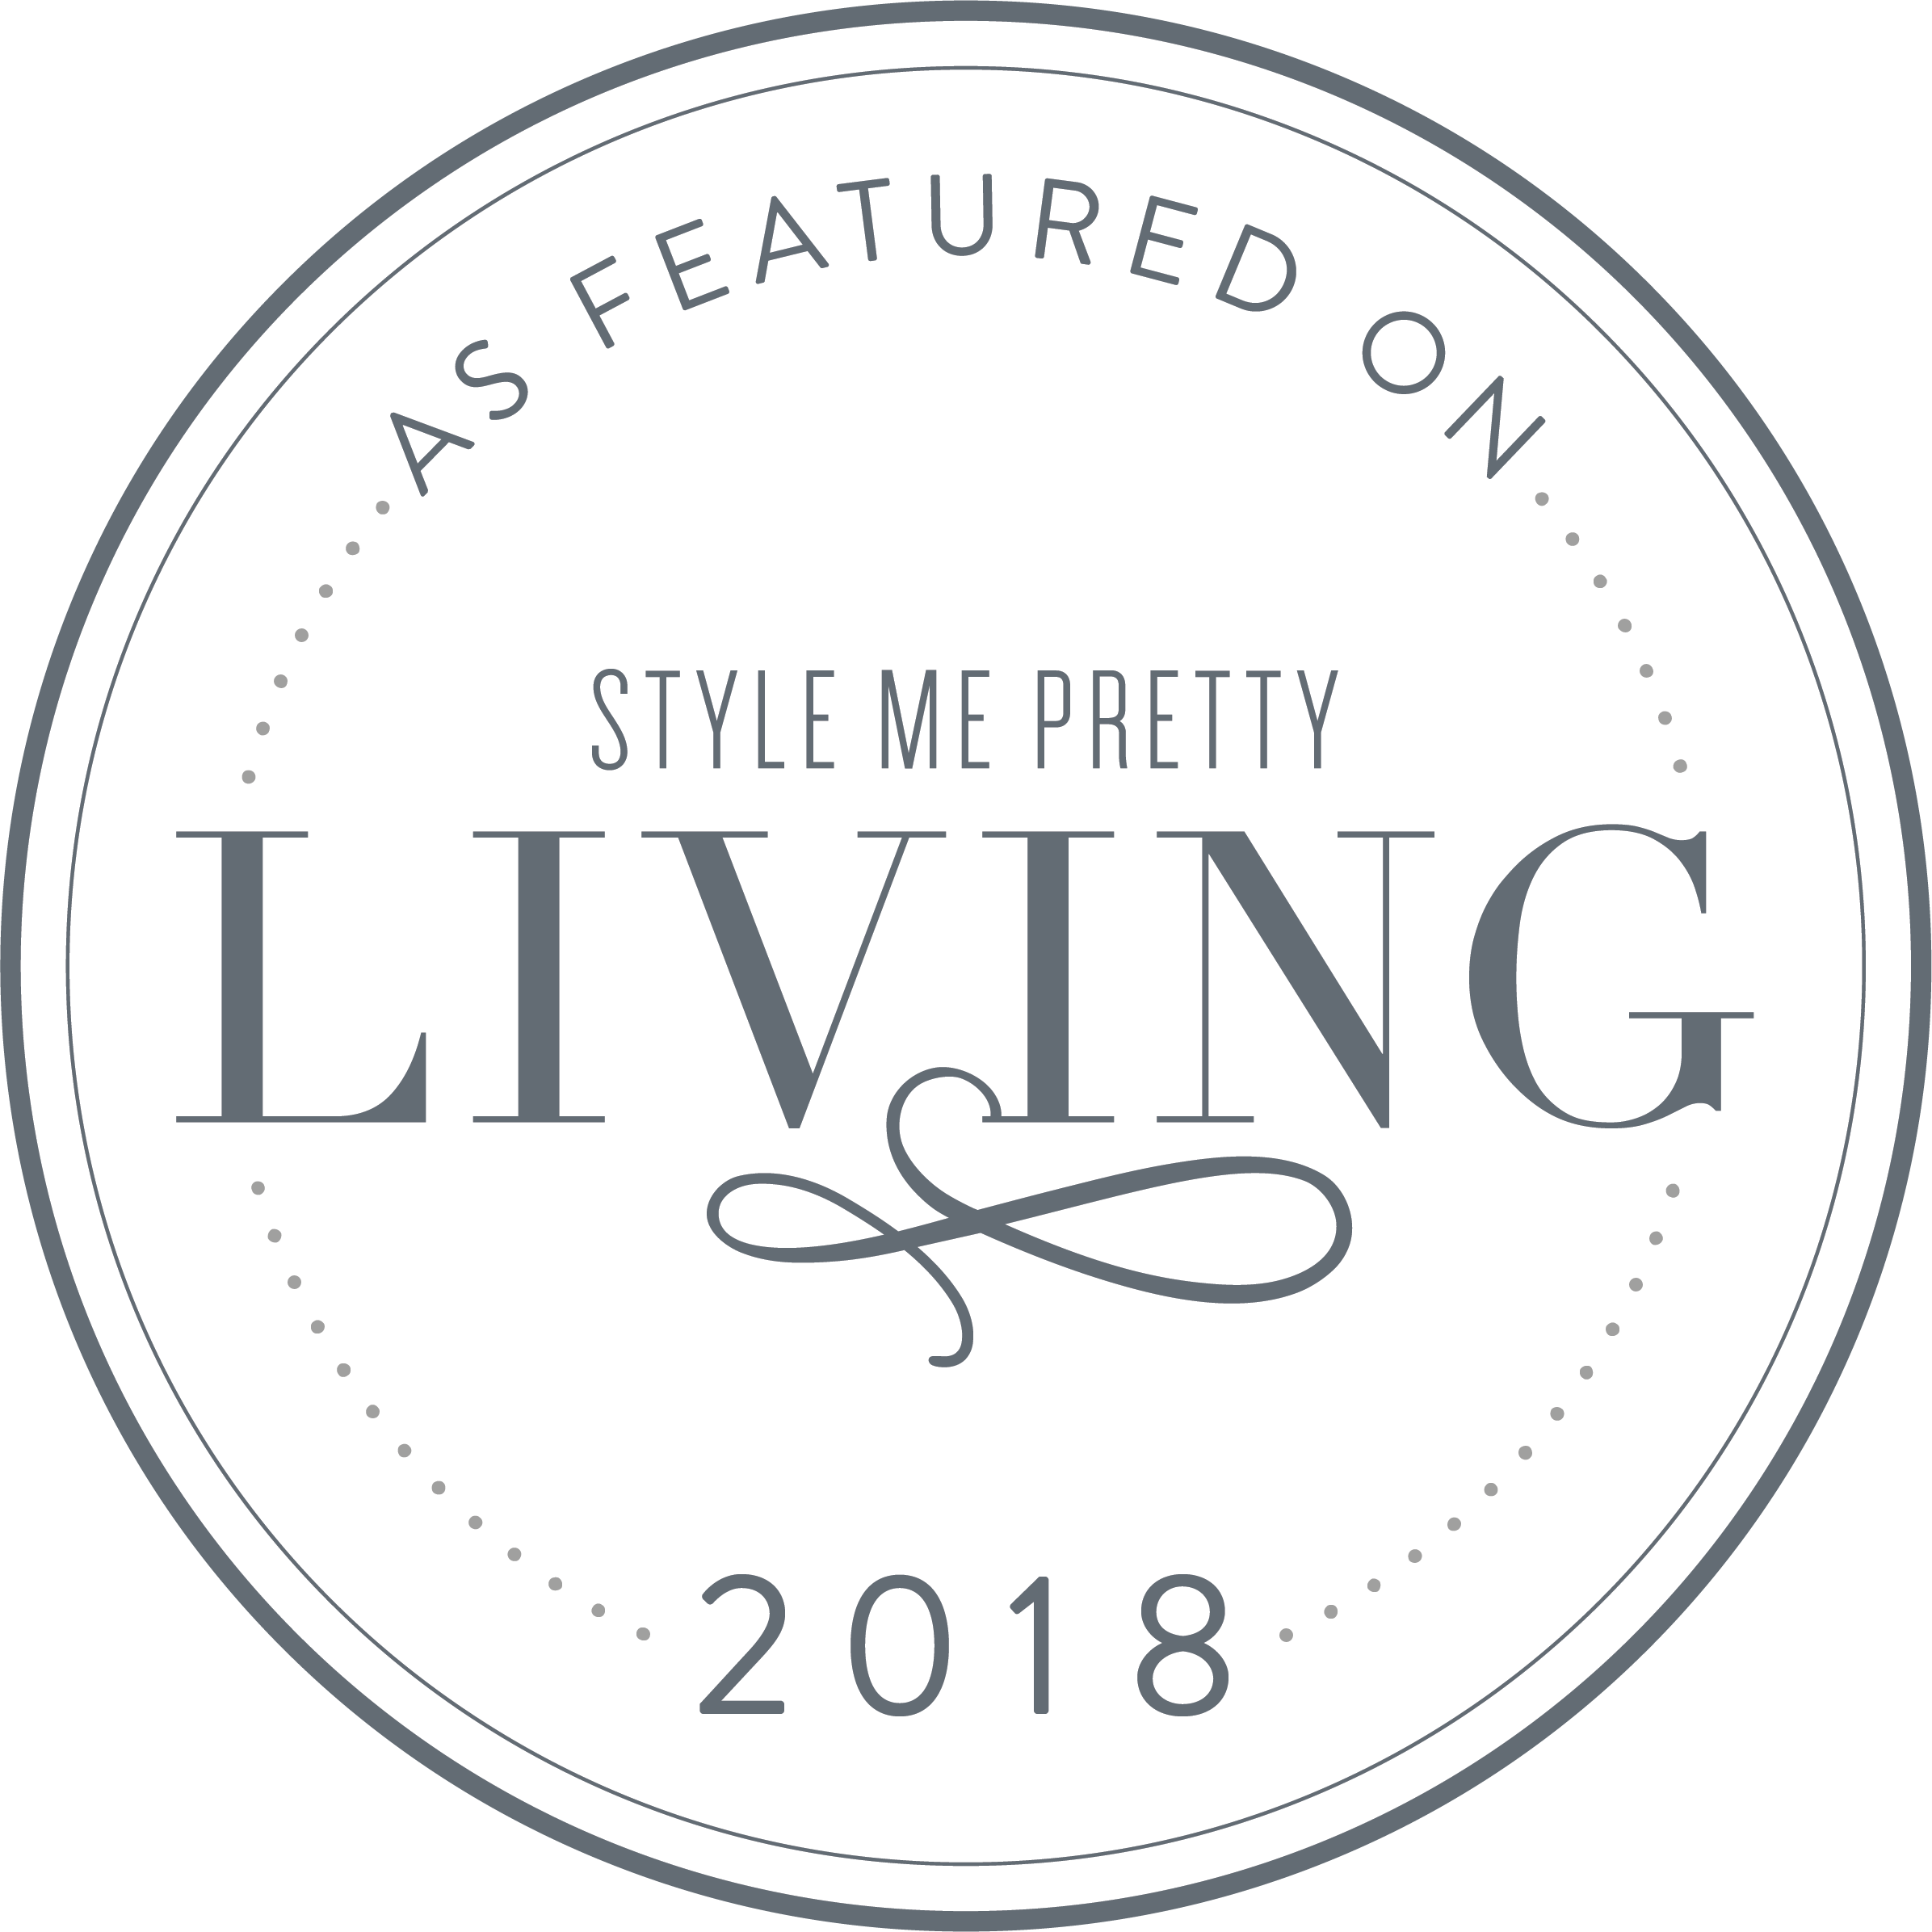 smp-badge_living-white_2018.png